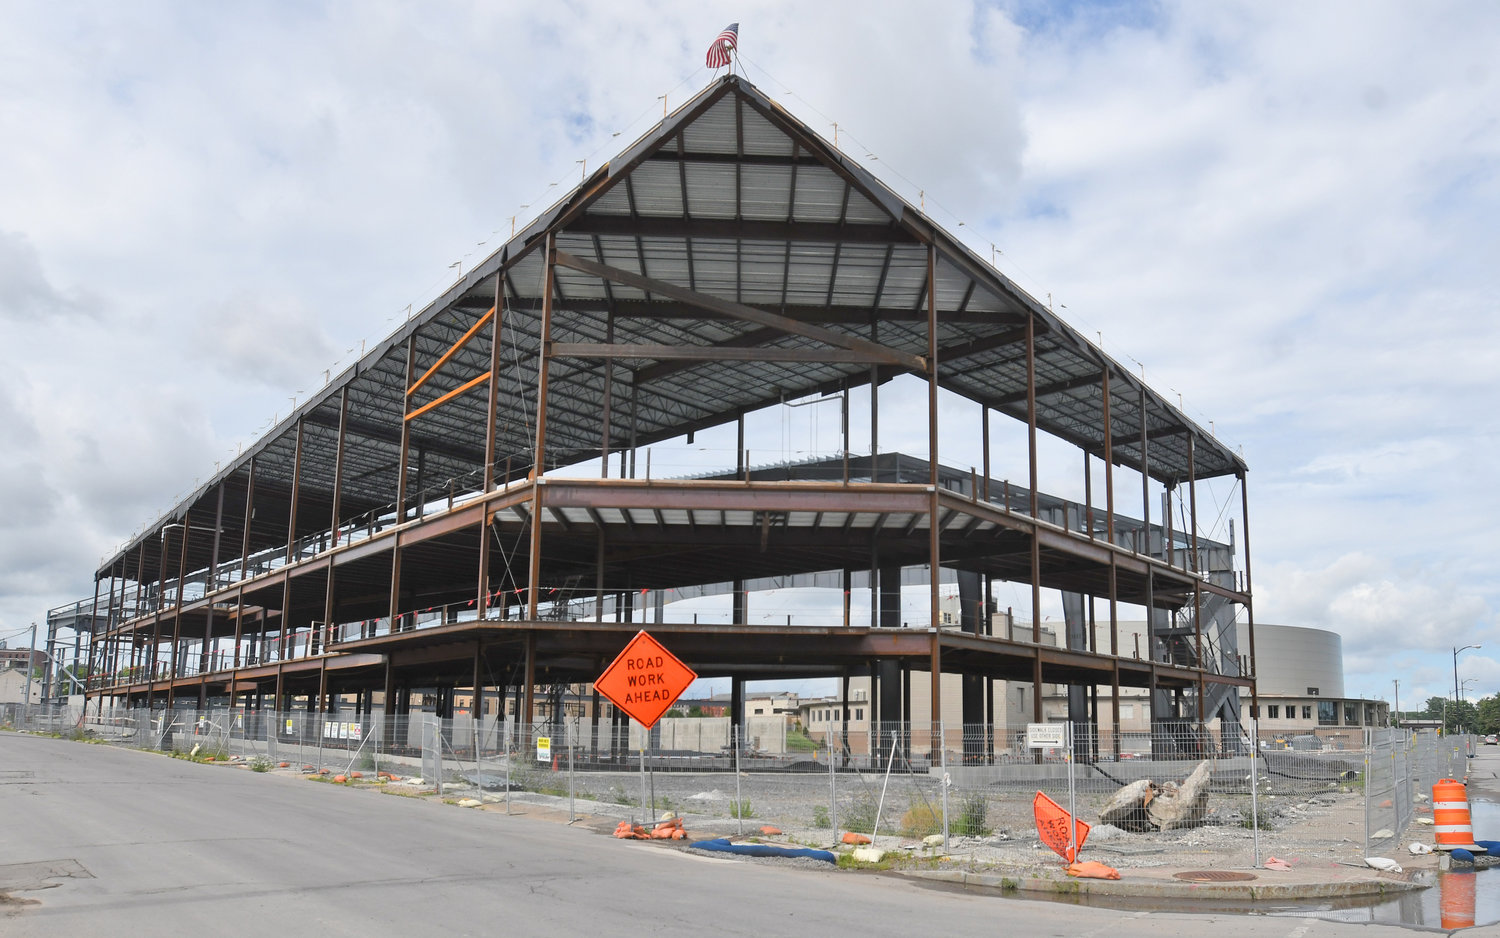 ON HOLD — Construction remains paused on the tournament-sports complex known as the Nexus Center on Oriskany Street in Utica. The 170,000-square foot, $40 million building is to have venues for sports tournaments, including hockey, indoor soccer and lacrosse, and is being built on land immediately east of the existing Adirondack Bank Auditorium, home of the Utica Comets minor-league professional hockey team. It is to be paid for through bonds issued by the Upper Mohawk Valley Auditorium Authority, some of the revenue from an increase in Oneida County's accommodations tax, and with some $22 million from New York State, but because of loss of state revenue related to the COVID-19 pandemic, construction was paused this spring.